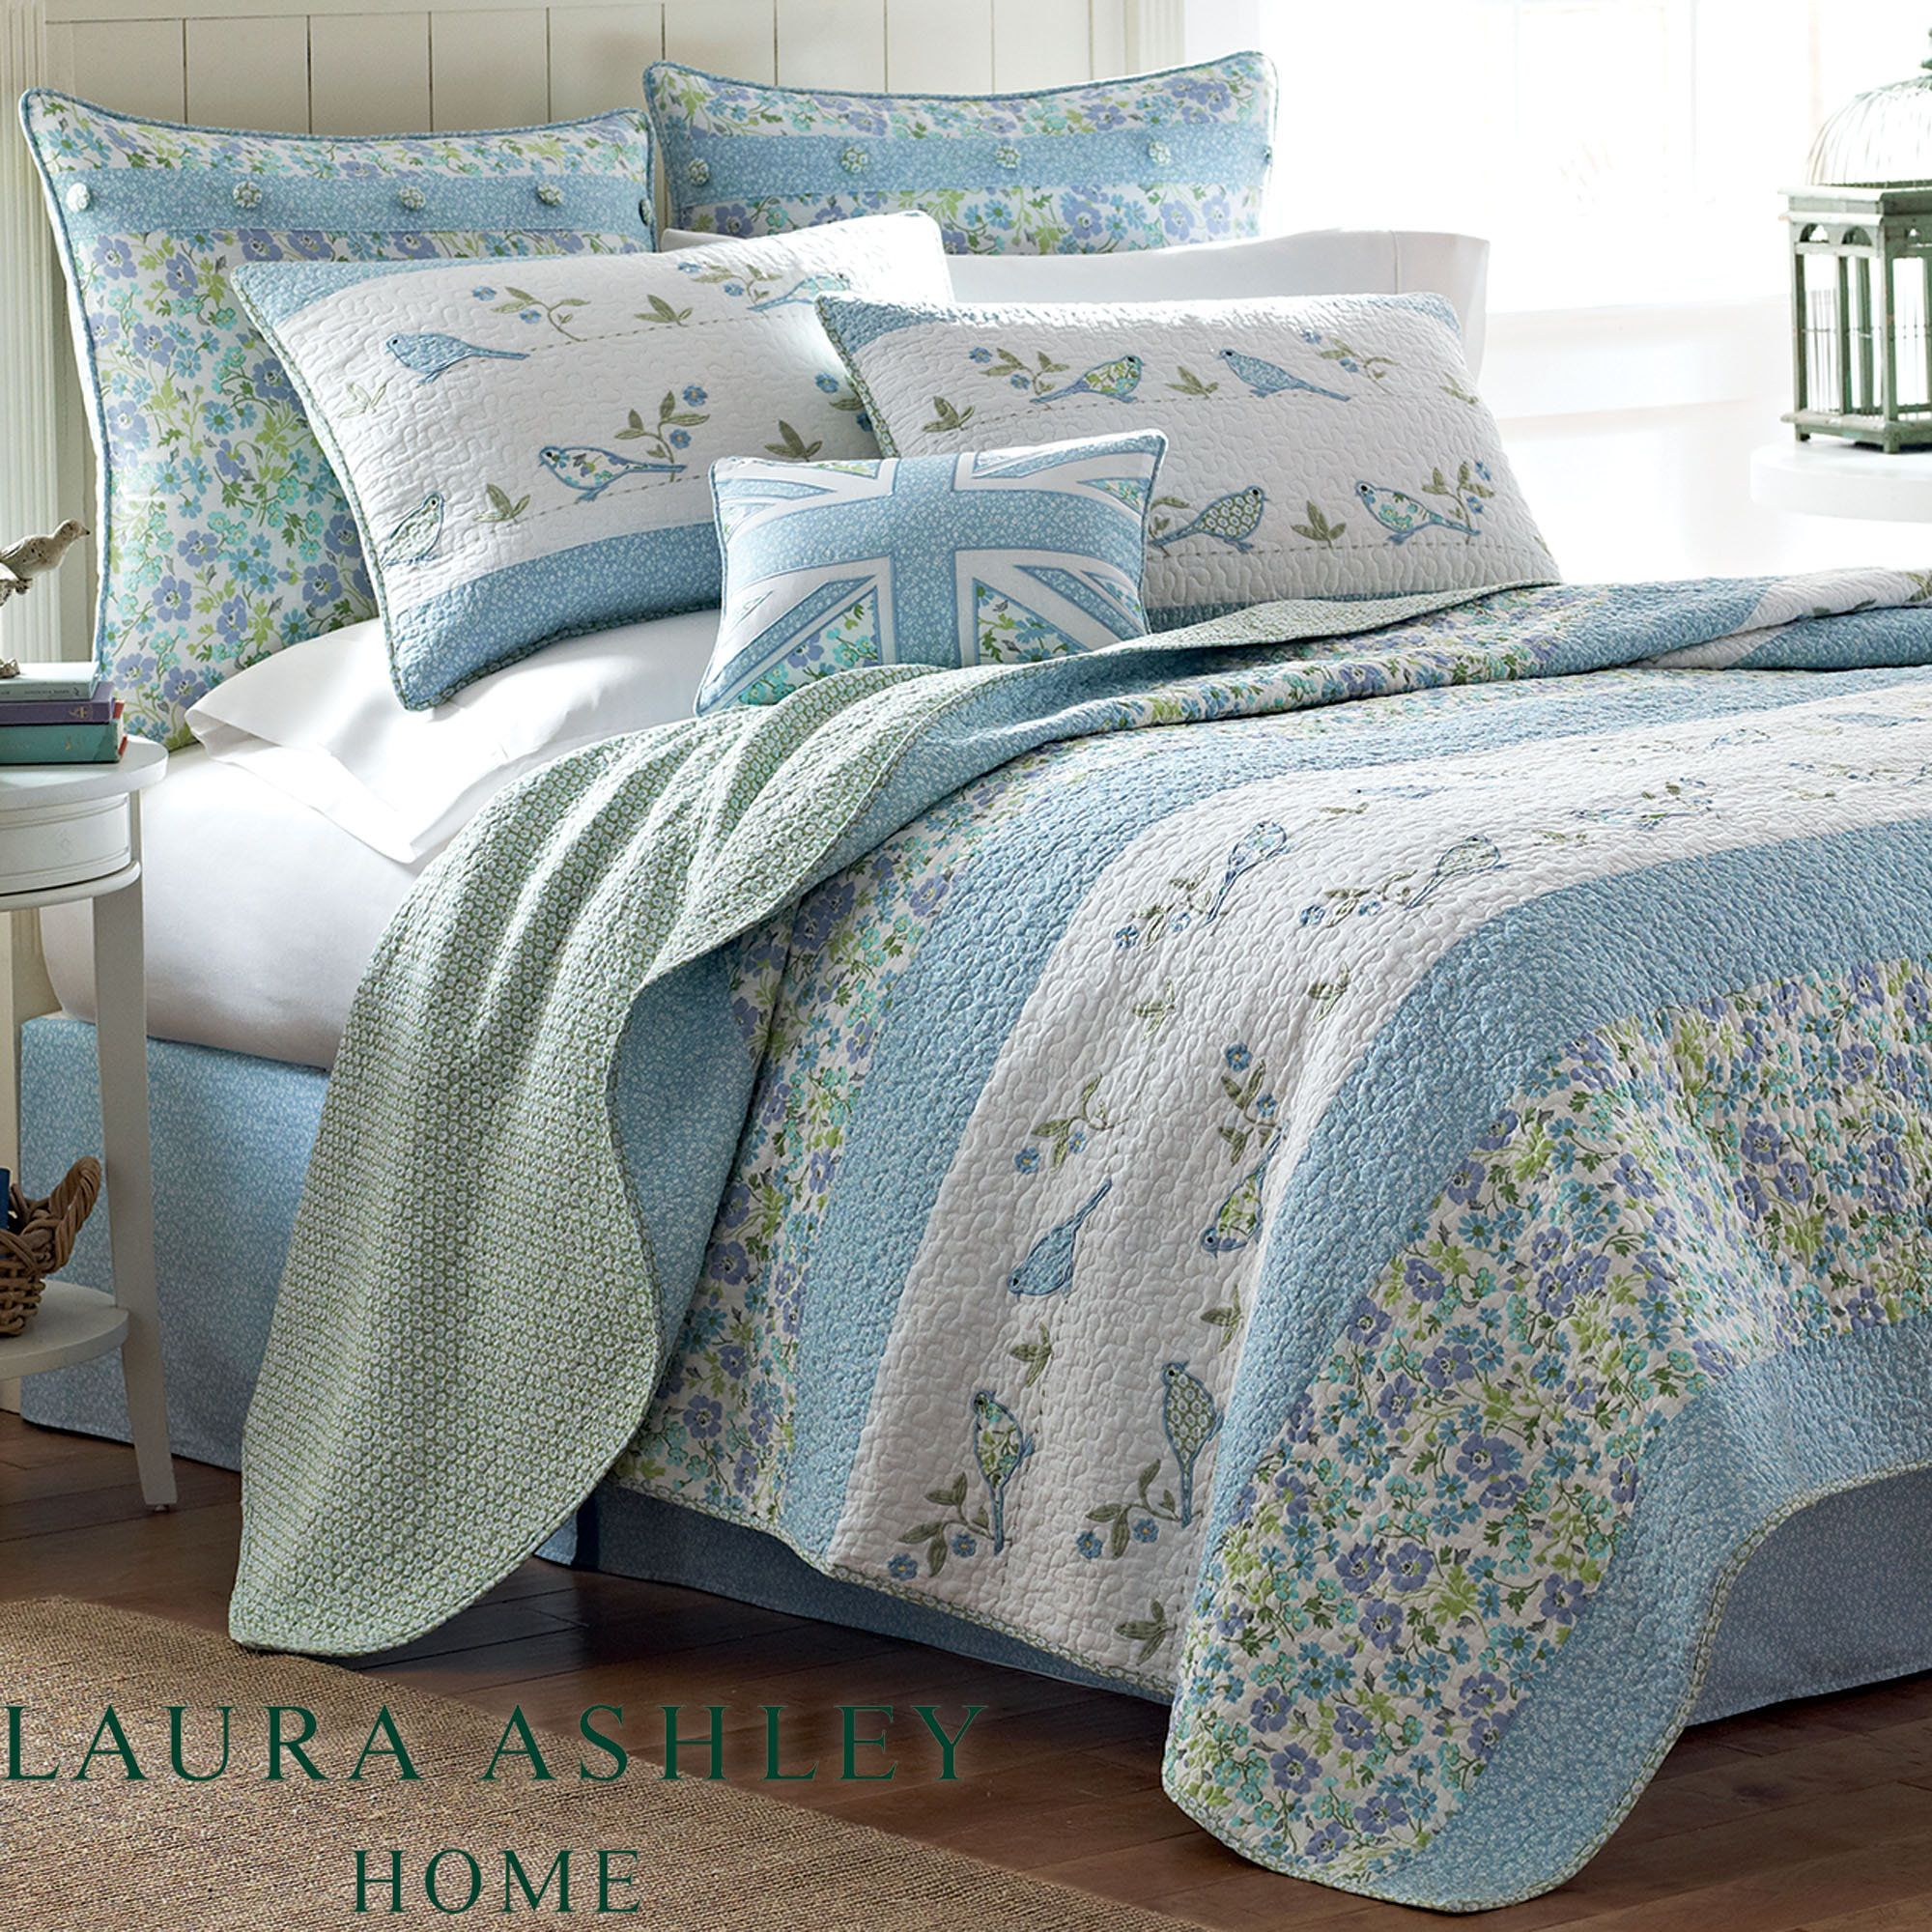 light quilt blue blooming floral magnolia p